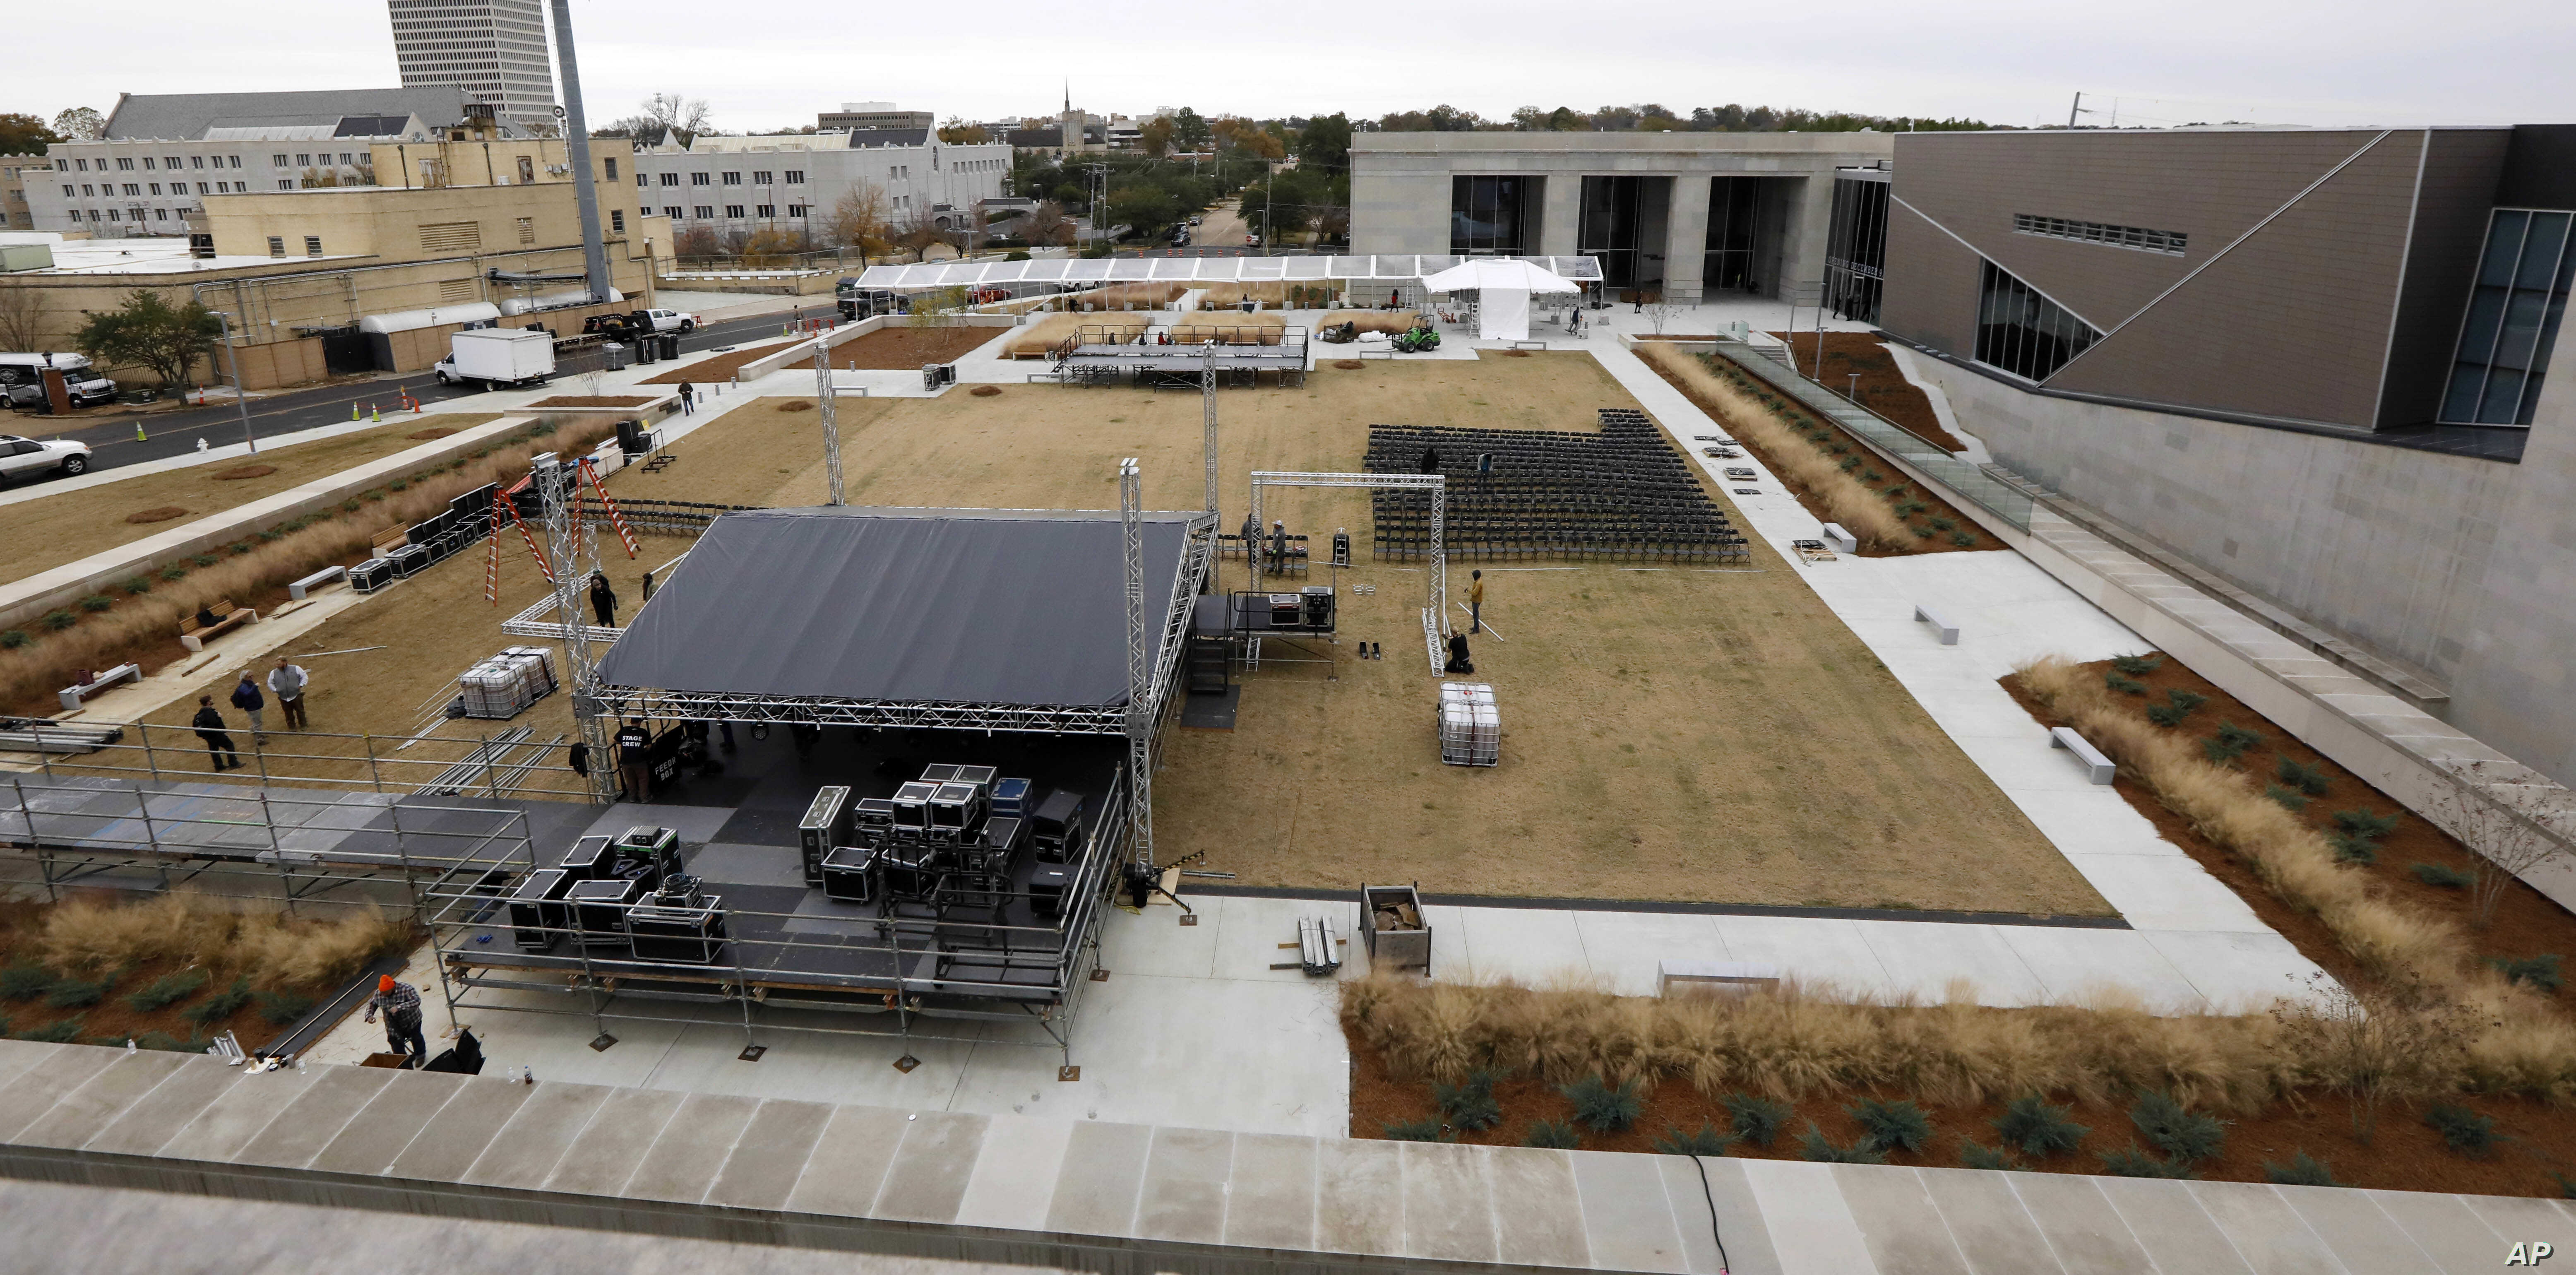 Work crews rush to set up a stage beside the state's two newest museums, the Museum of Mississippi History and the Mississippi Civil Rights Museum, Dec. 7, 2017, in Jackson, Miss. The long-planned Saturday ceremony will mark Mississippi's bicentennia...